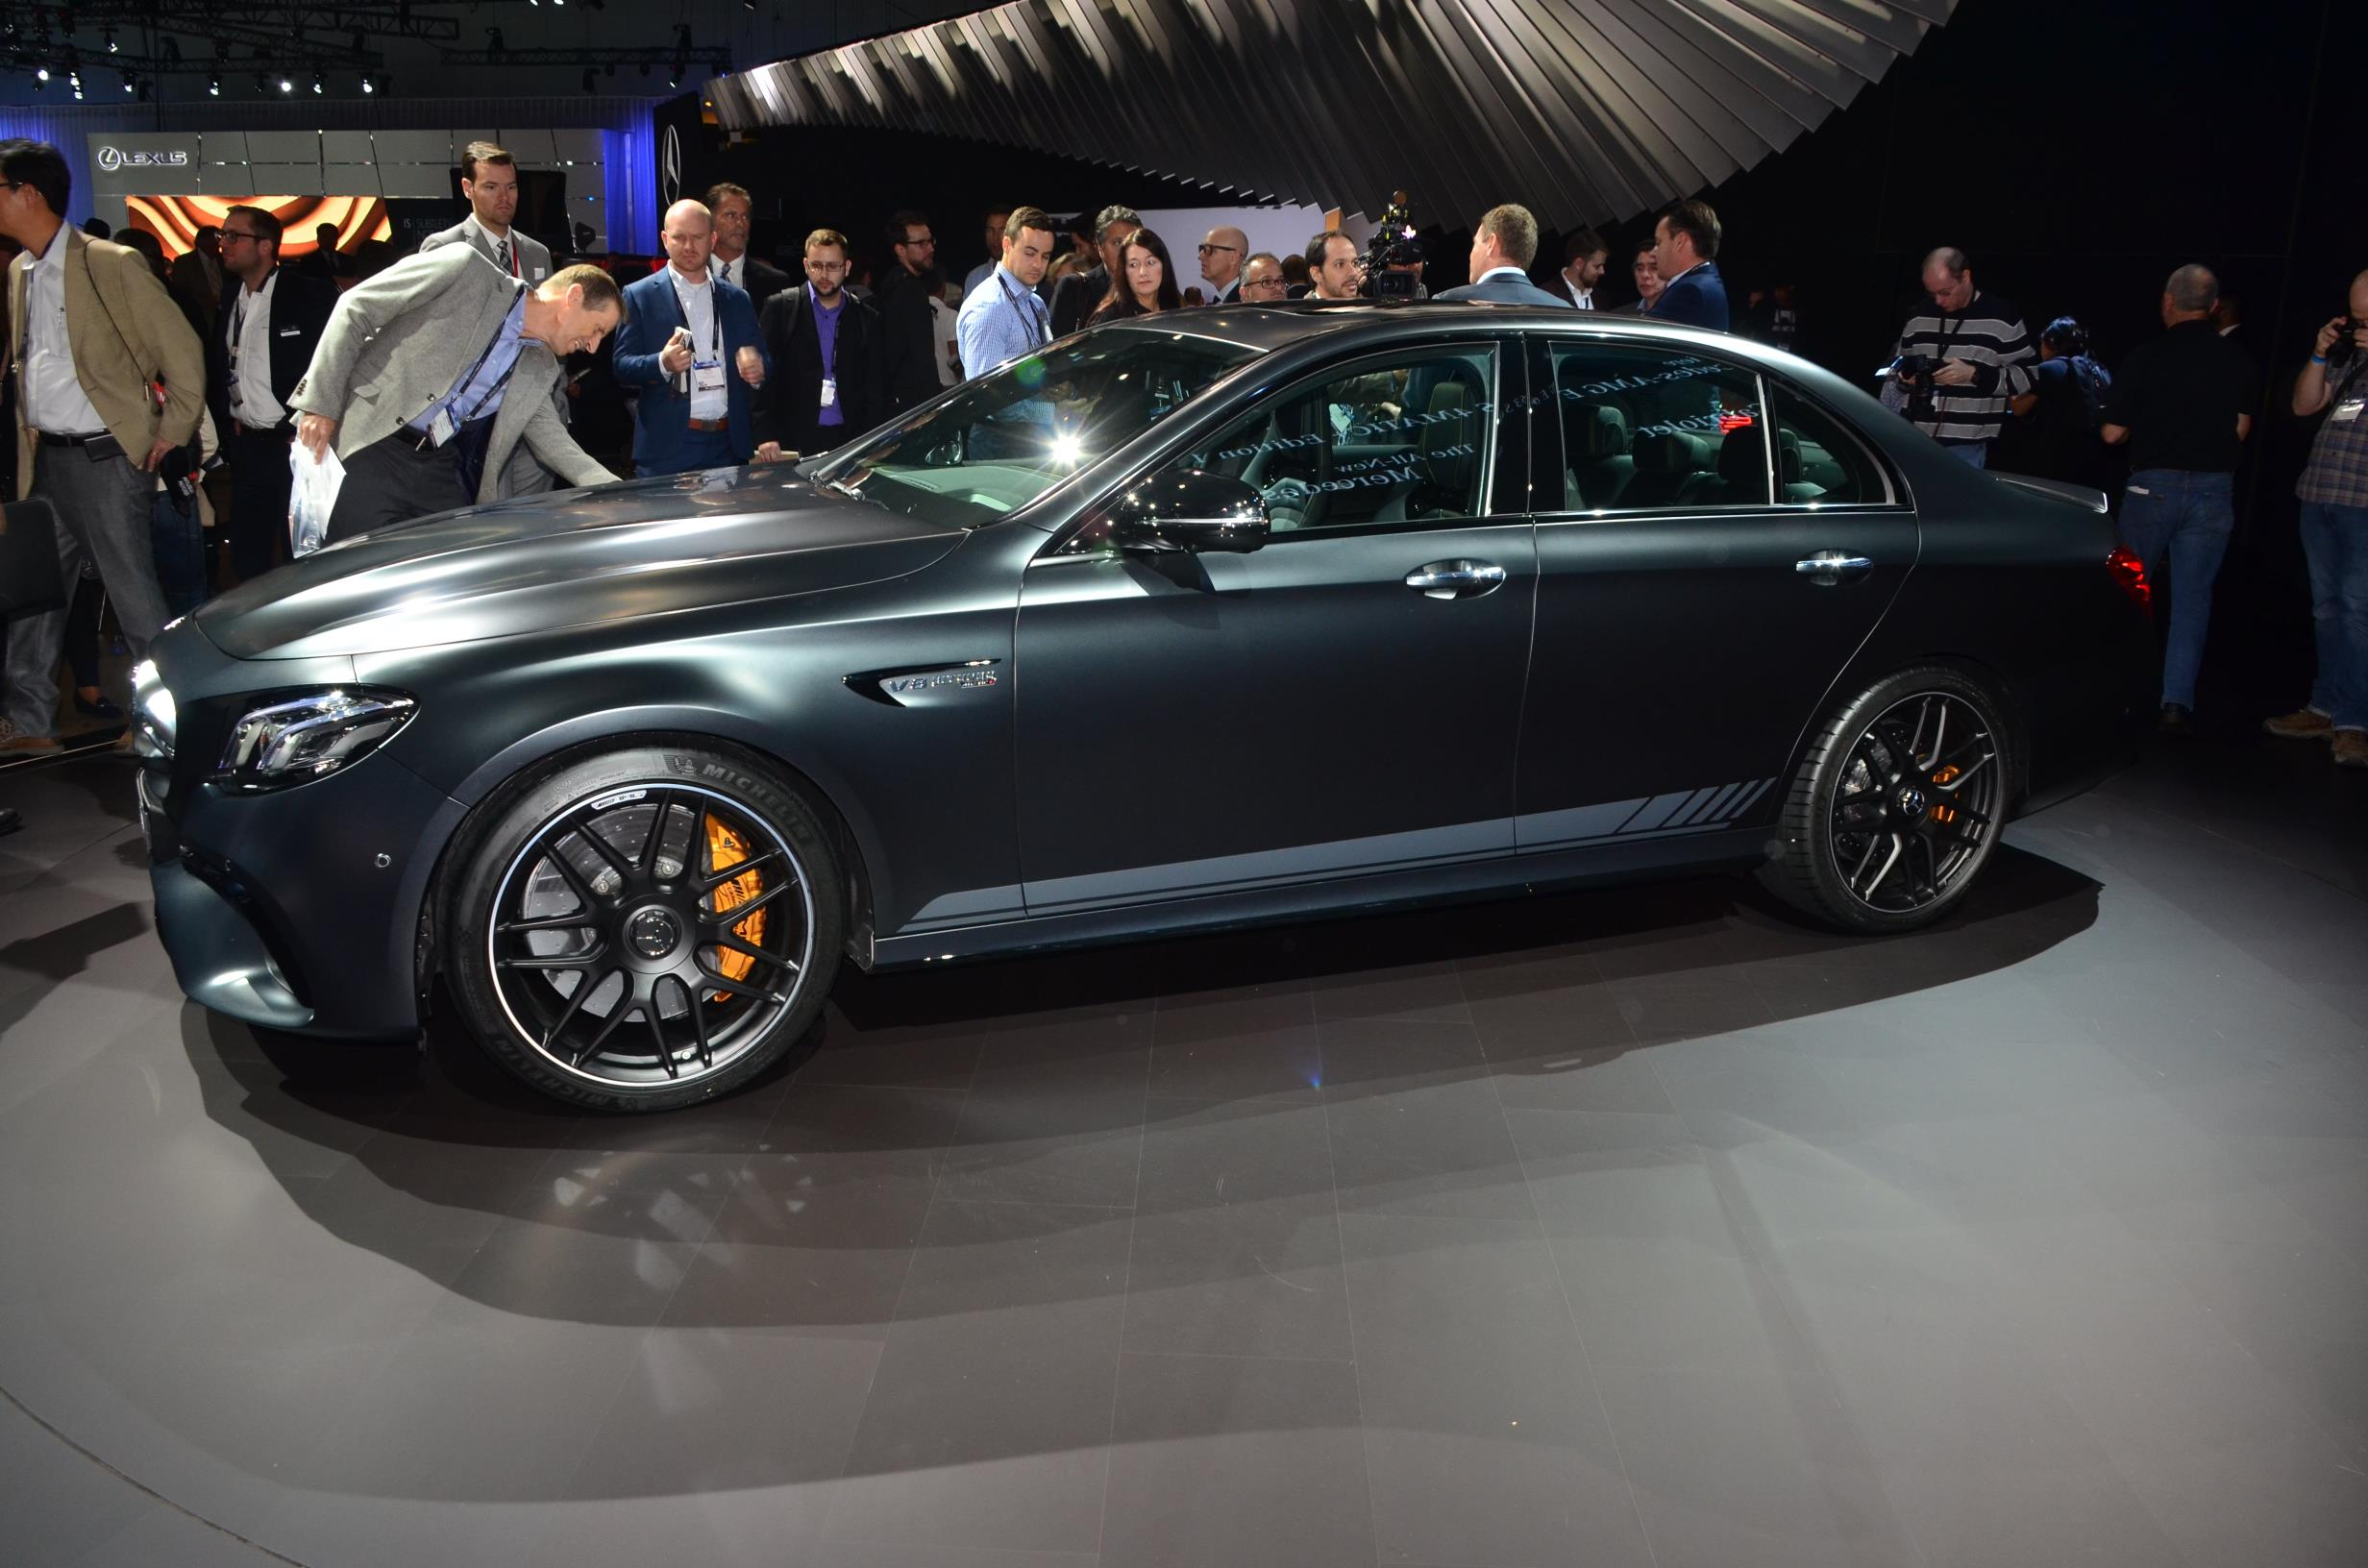 Mercedes Amg E63 S Edition 1 Is Black At 2016 La Auto Show